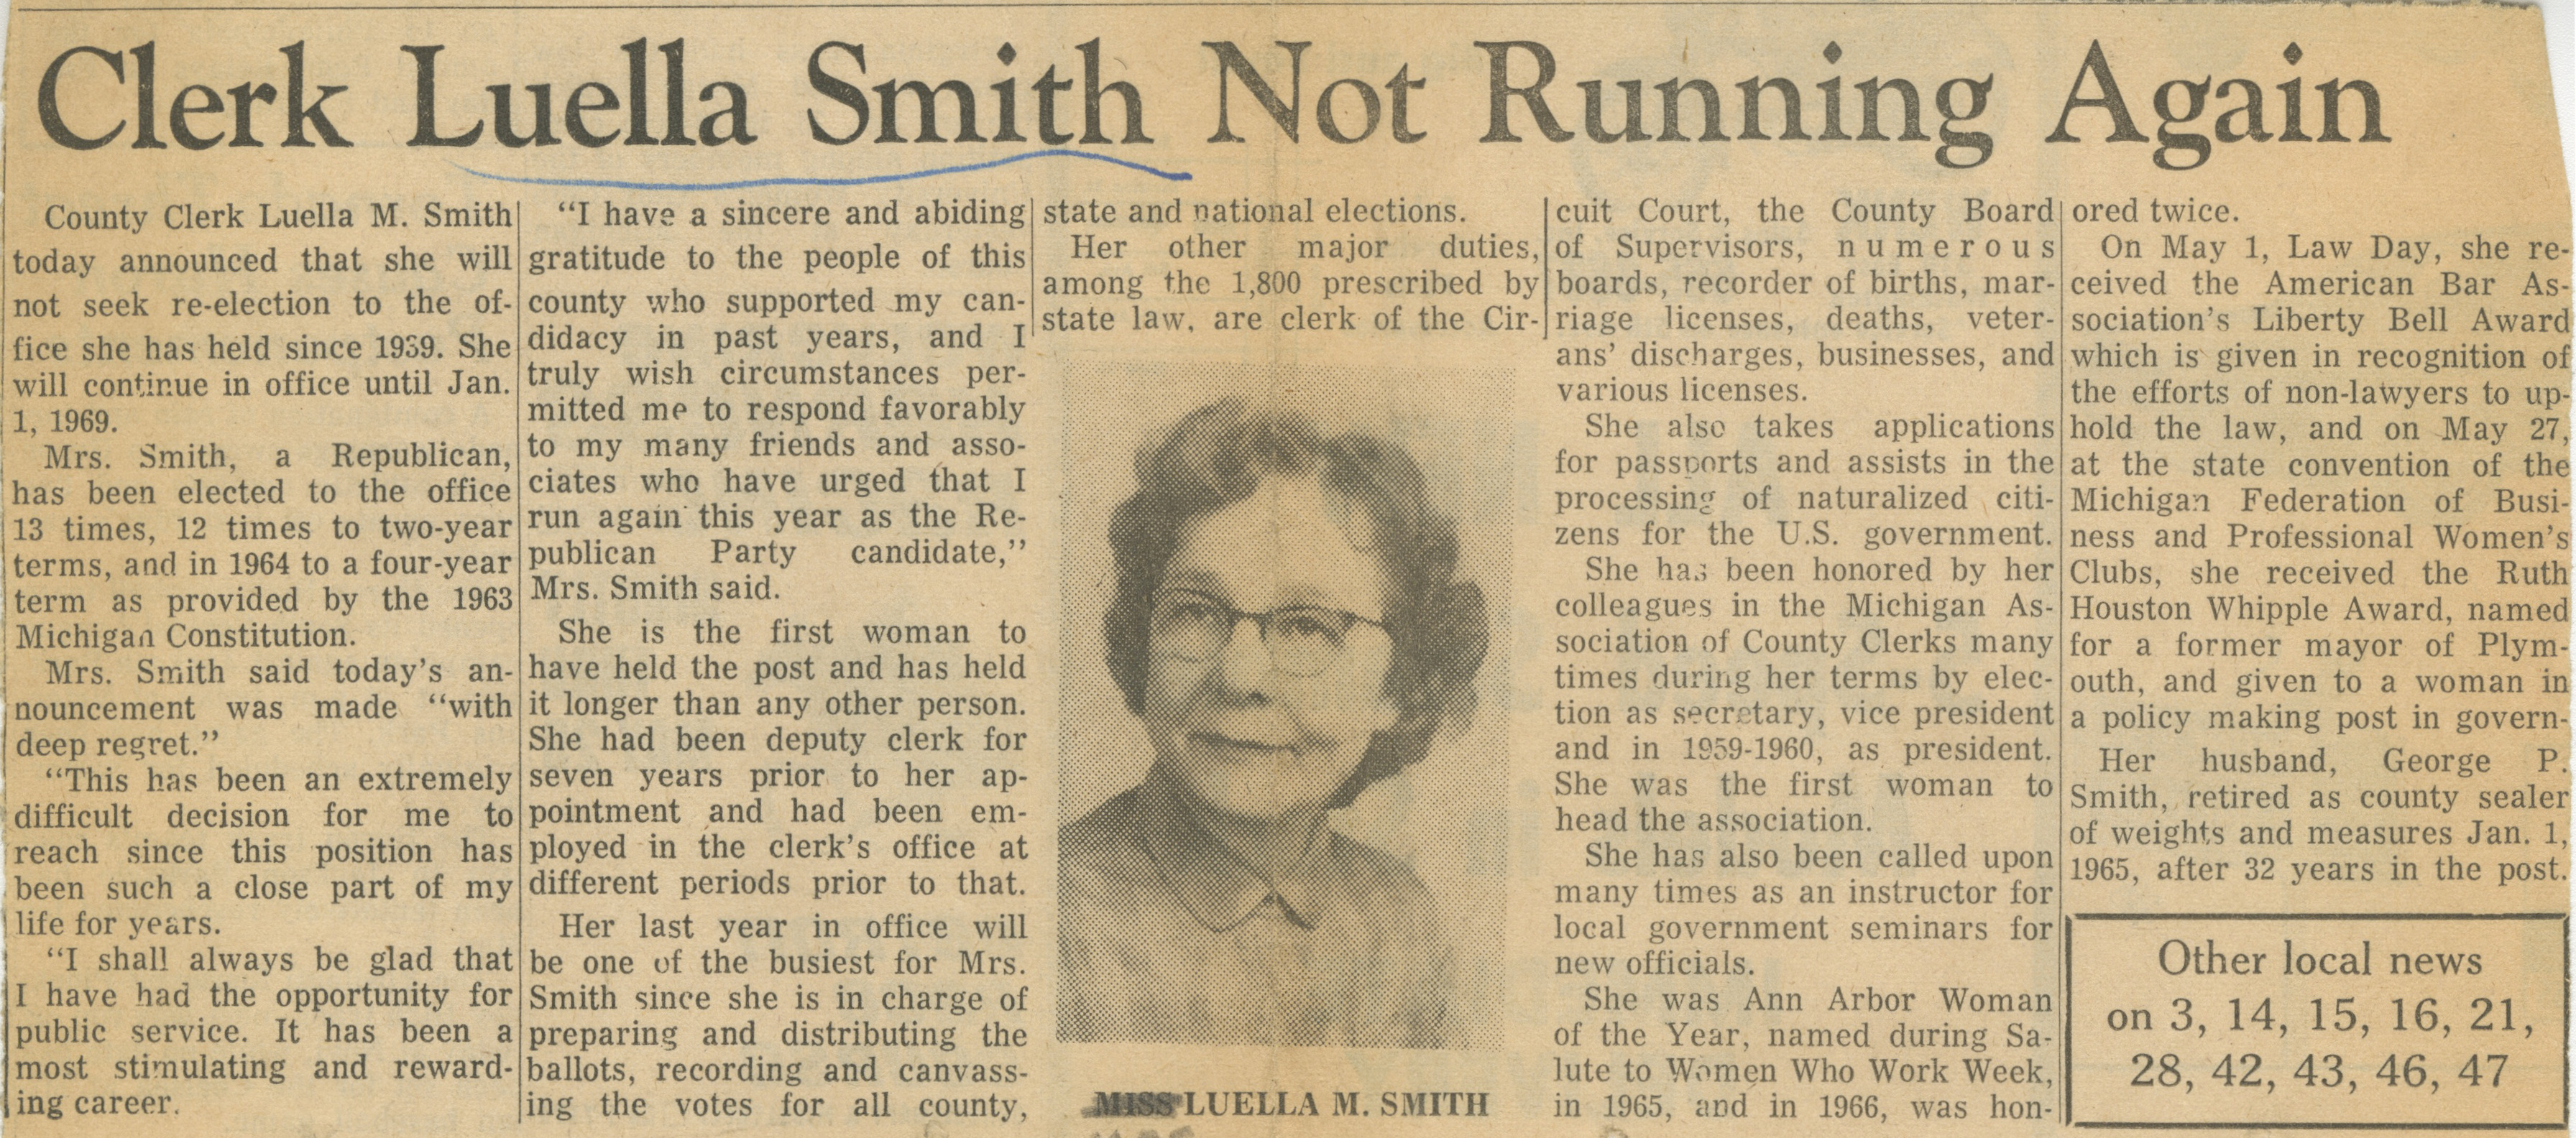 Clerk Luella Smith Not Running Again image